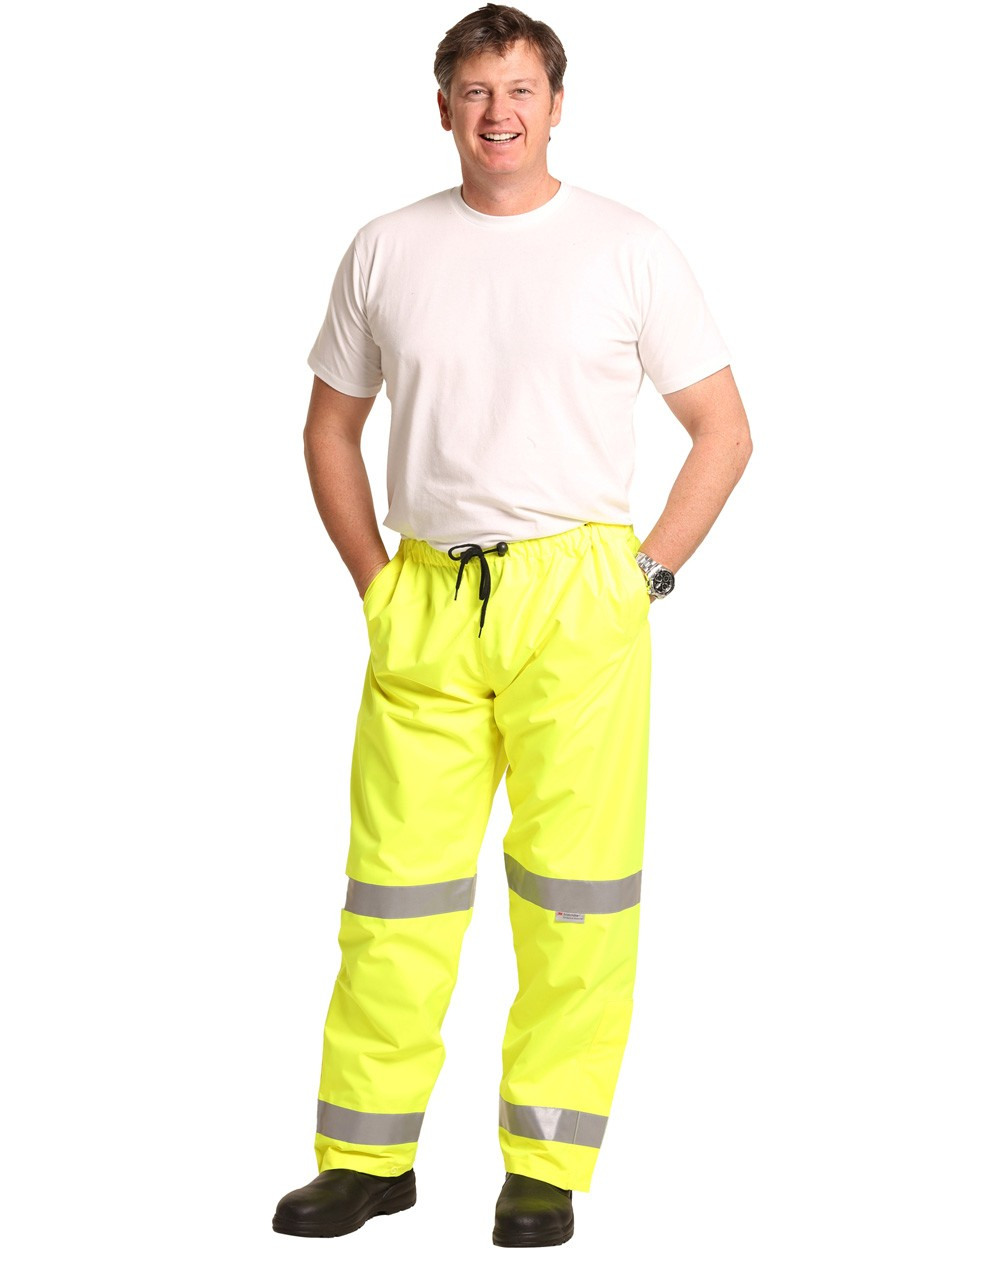 Winning Spirit High Visibility Safety Pants with 3M Reflective Tapes